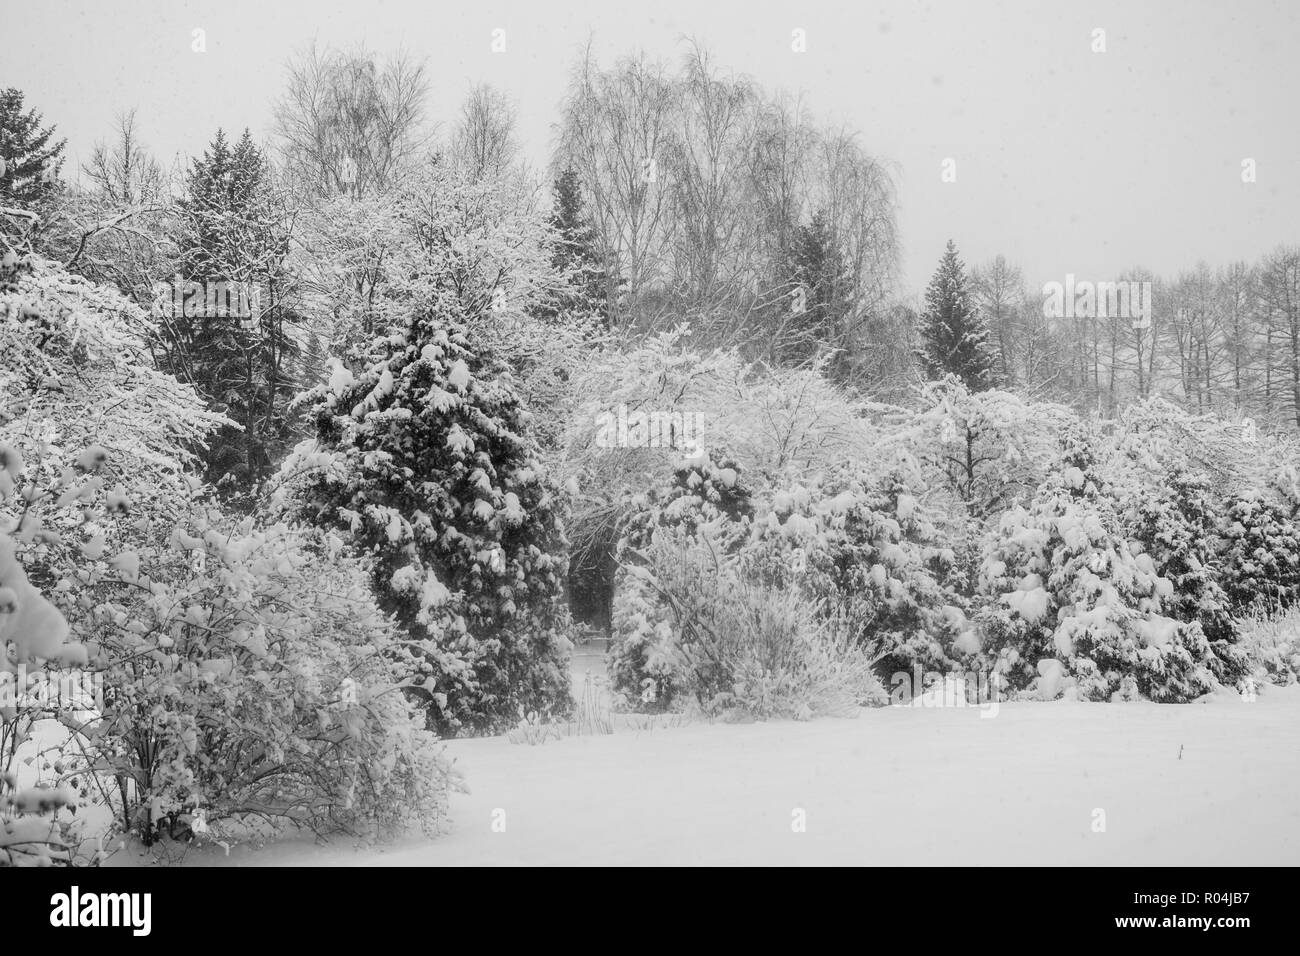 View of snow-covered winter urban park.  - Stock Image